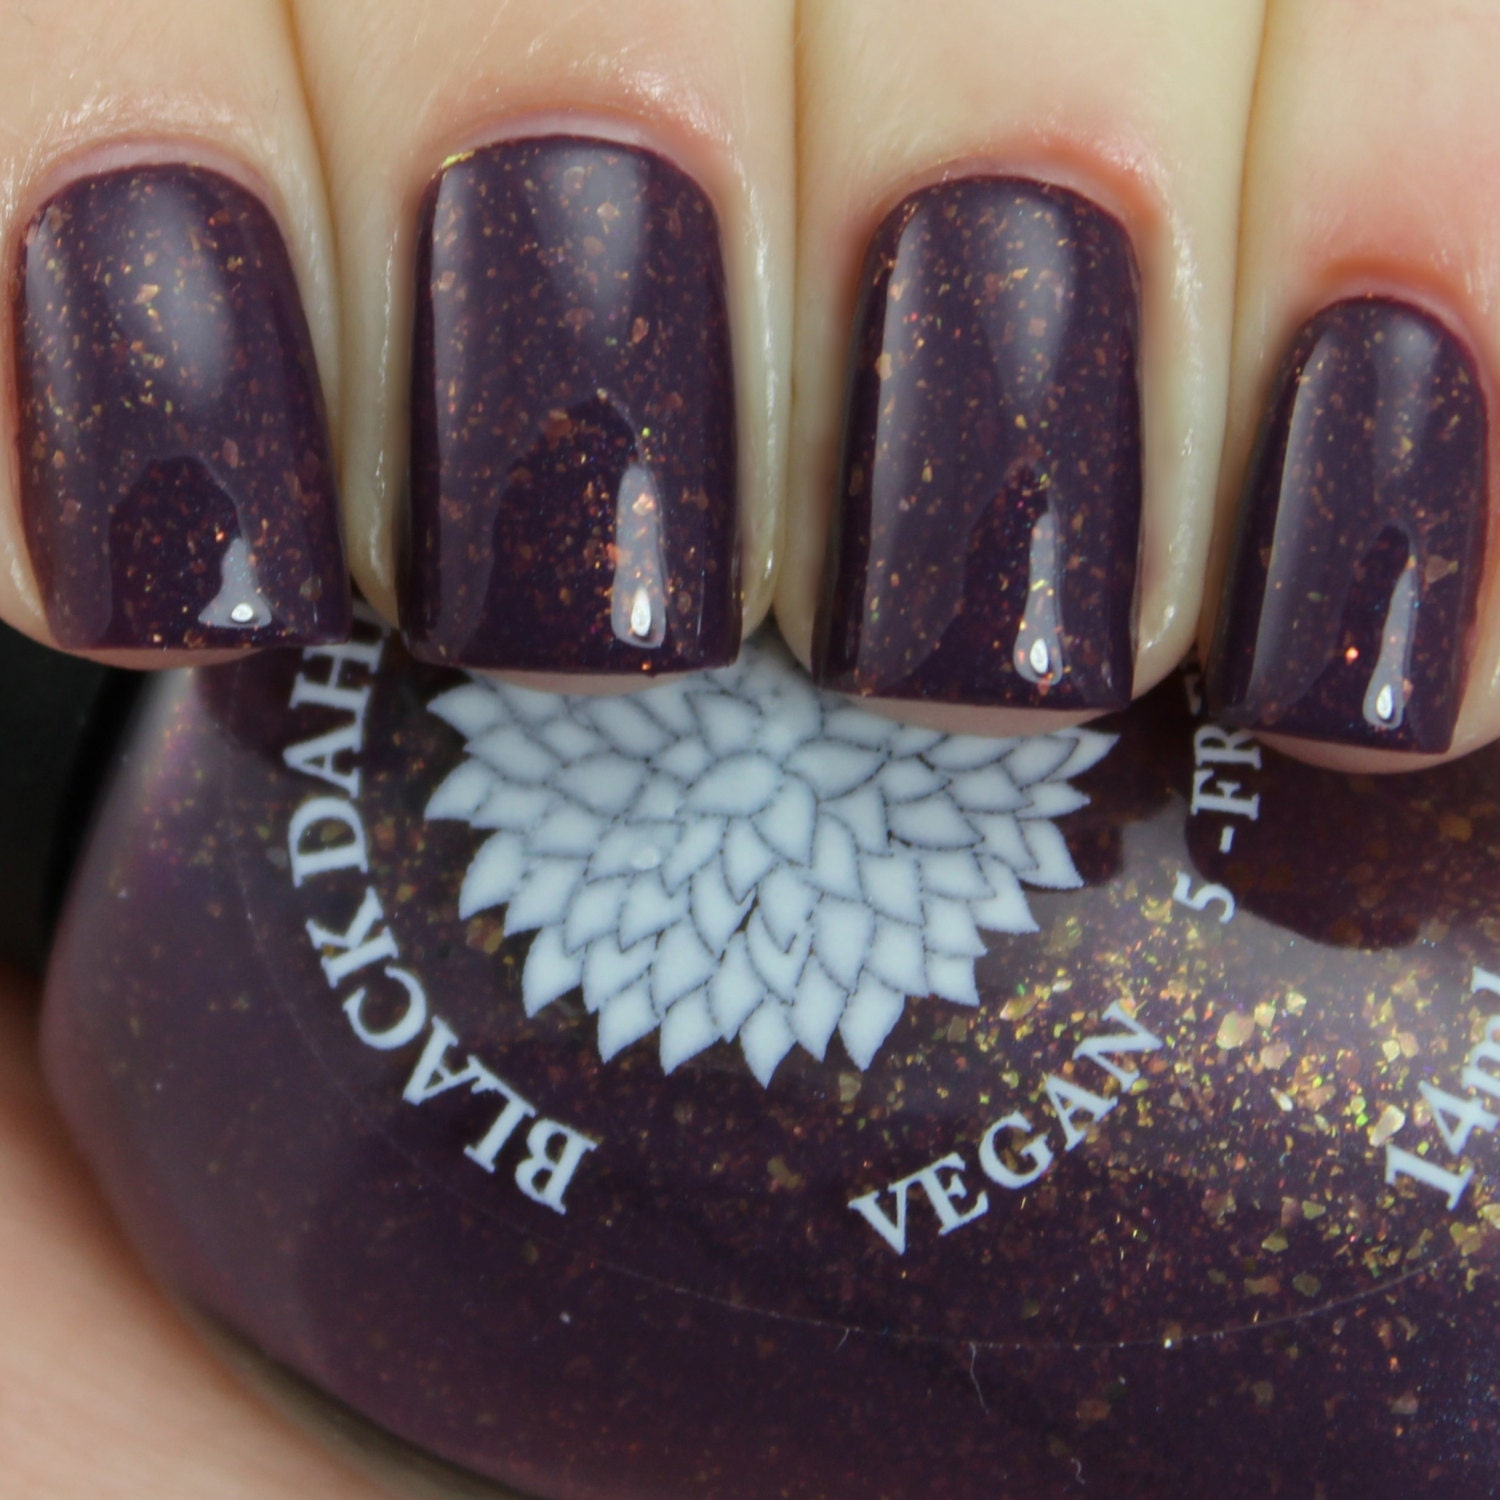 Dark Plum Crelly Nail Polish with Gold Flakies and Shimmer